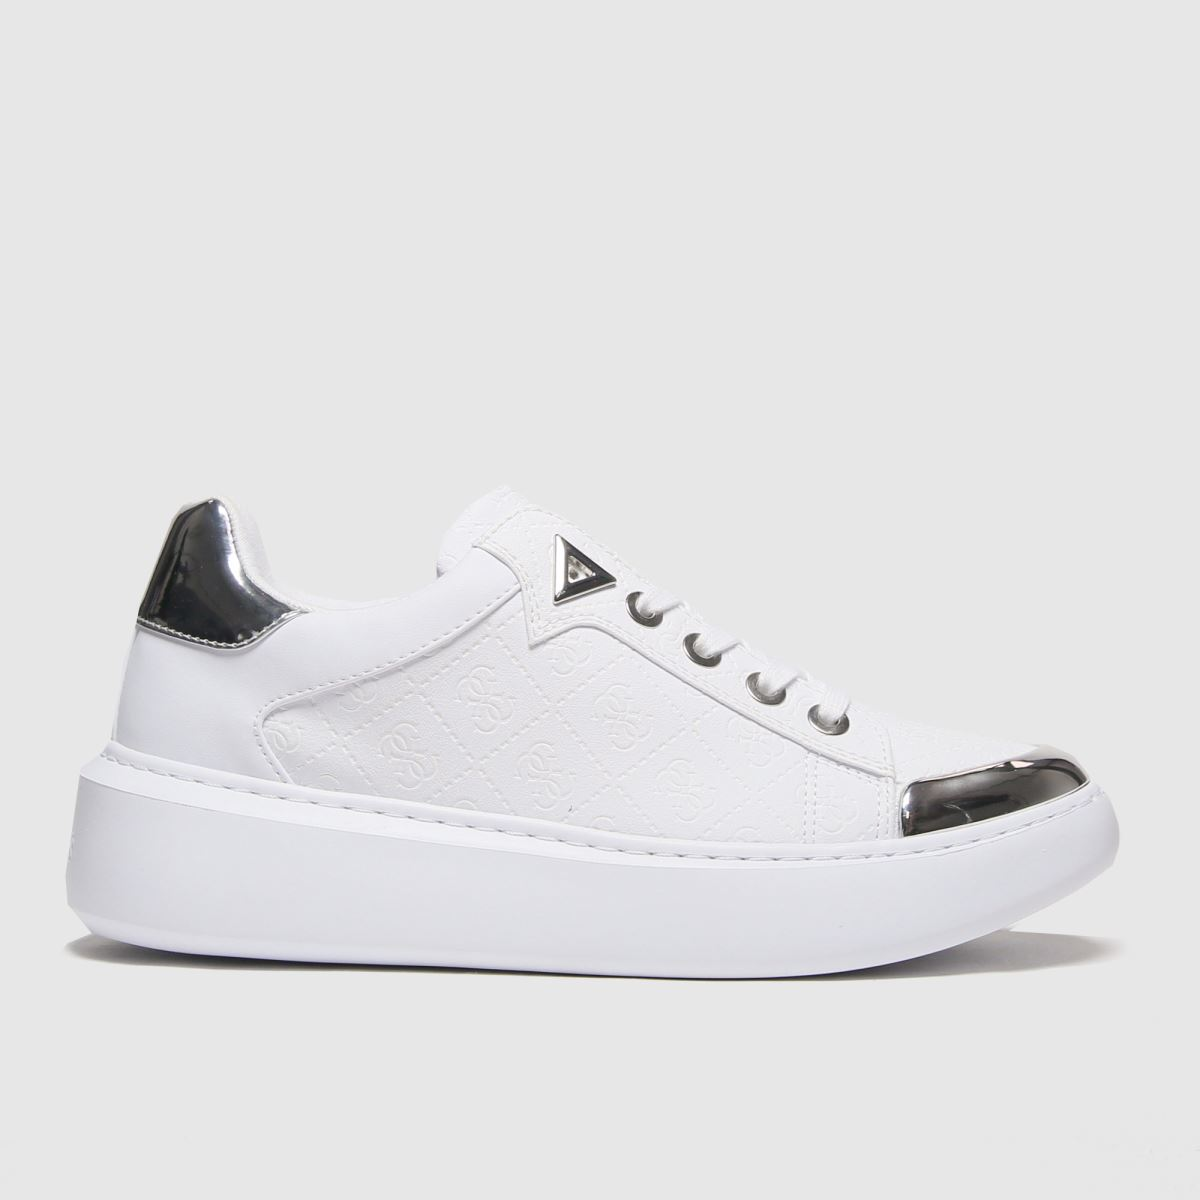 Guess White & Silver Brandyn Trainers